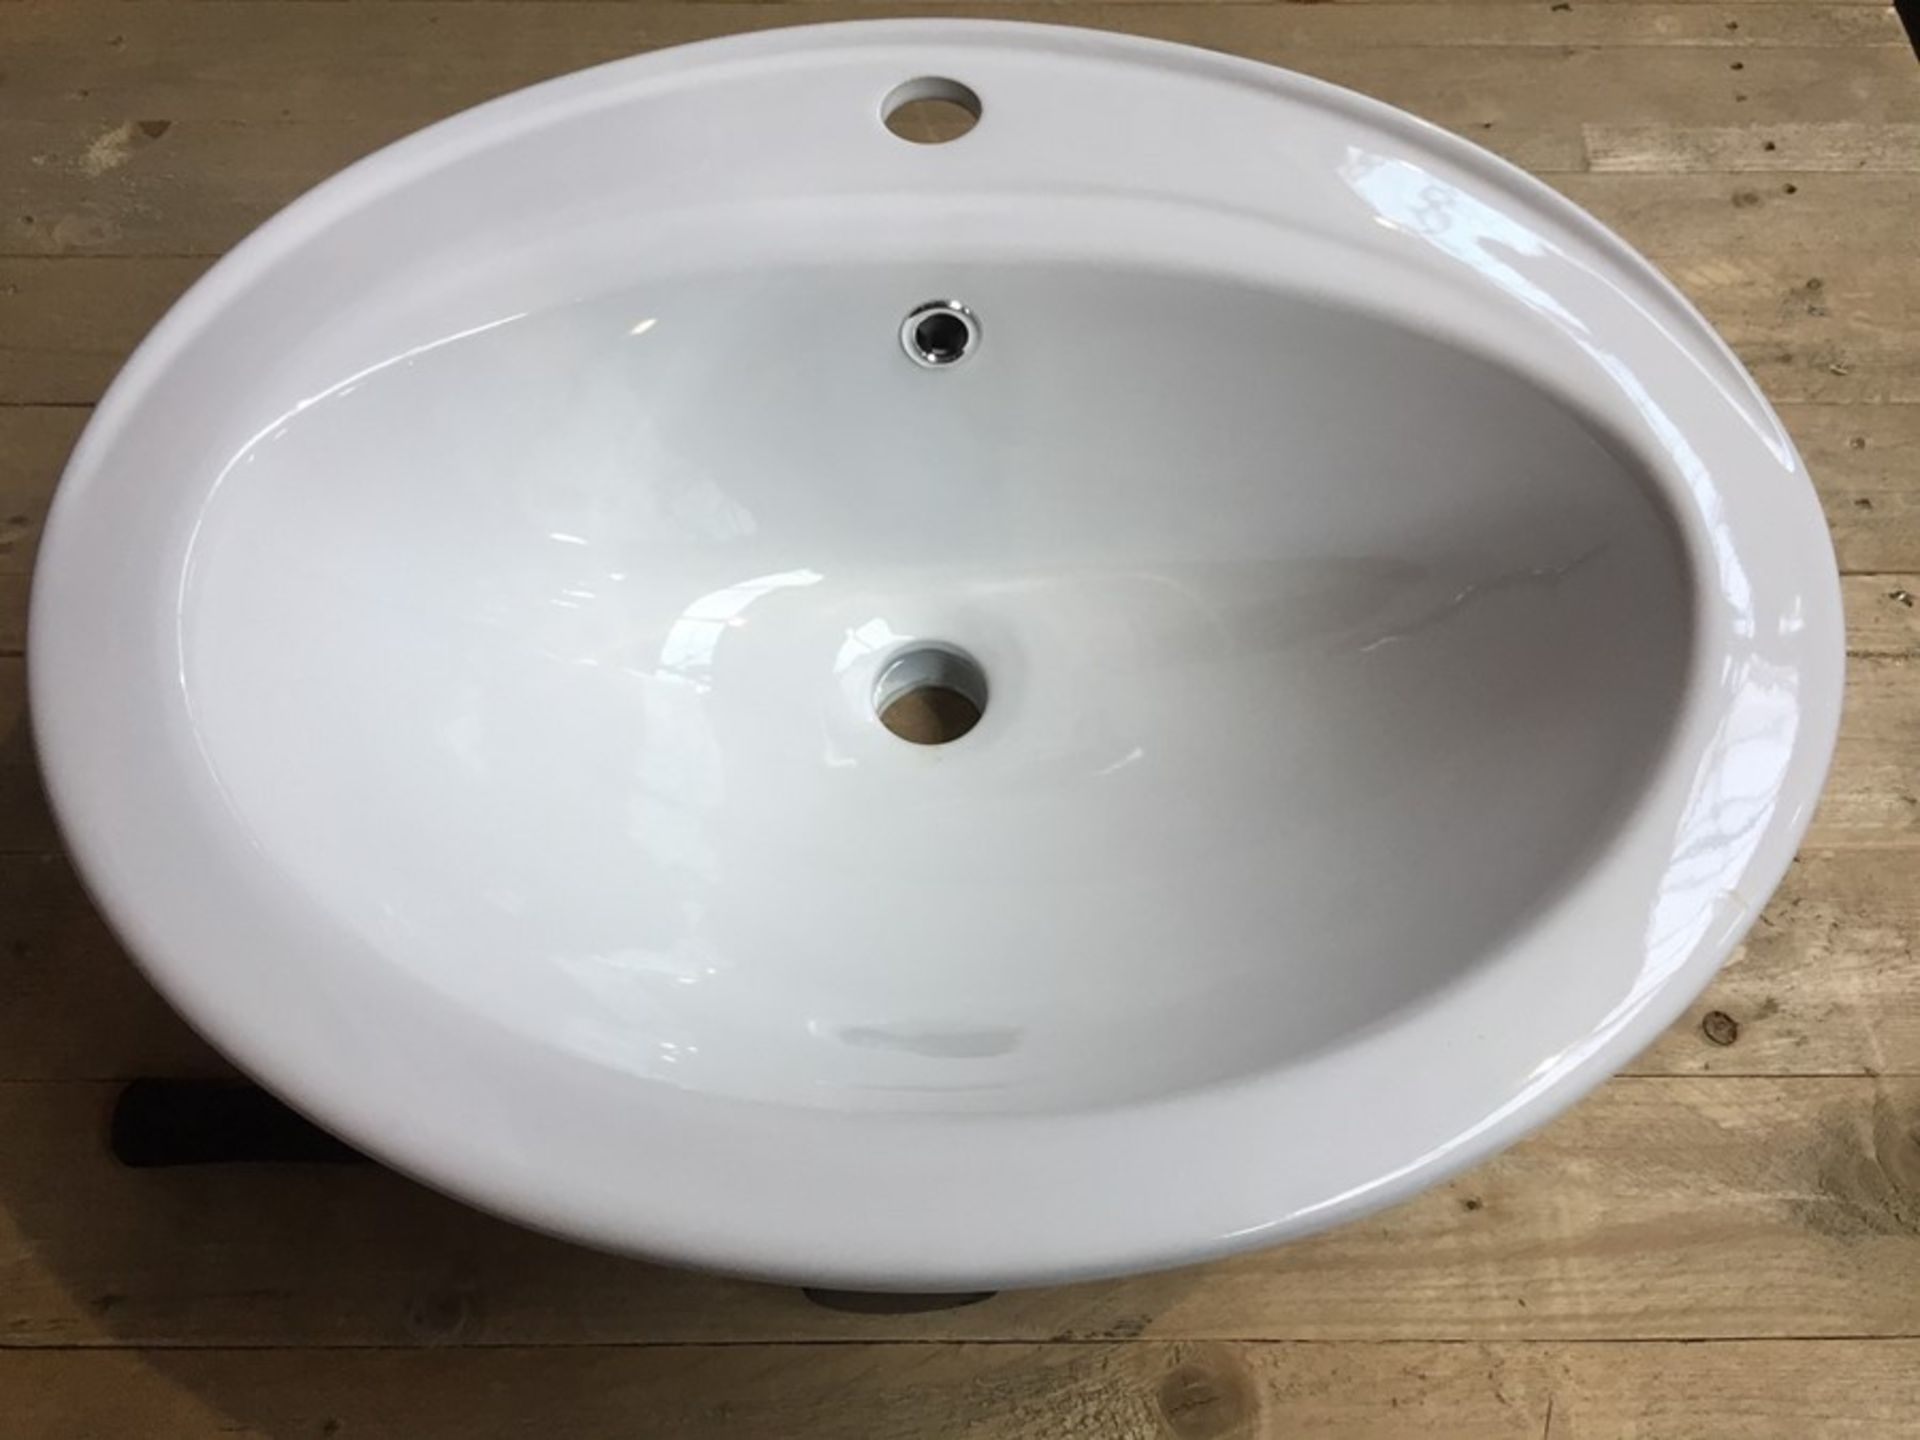 Lot 52 - 1 AS NEW BOXED OVAL INSET CERAMIC BASIN ONE TAP HOLE RRP £129.00 - C825.1